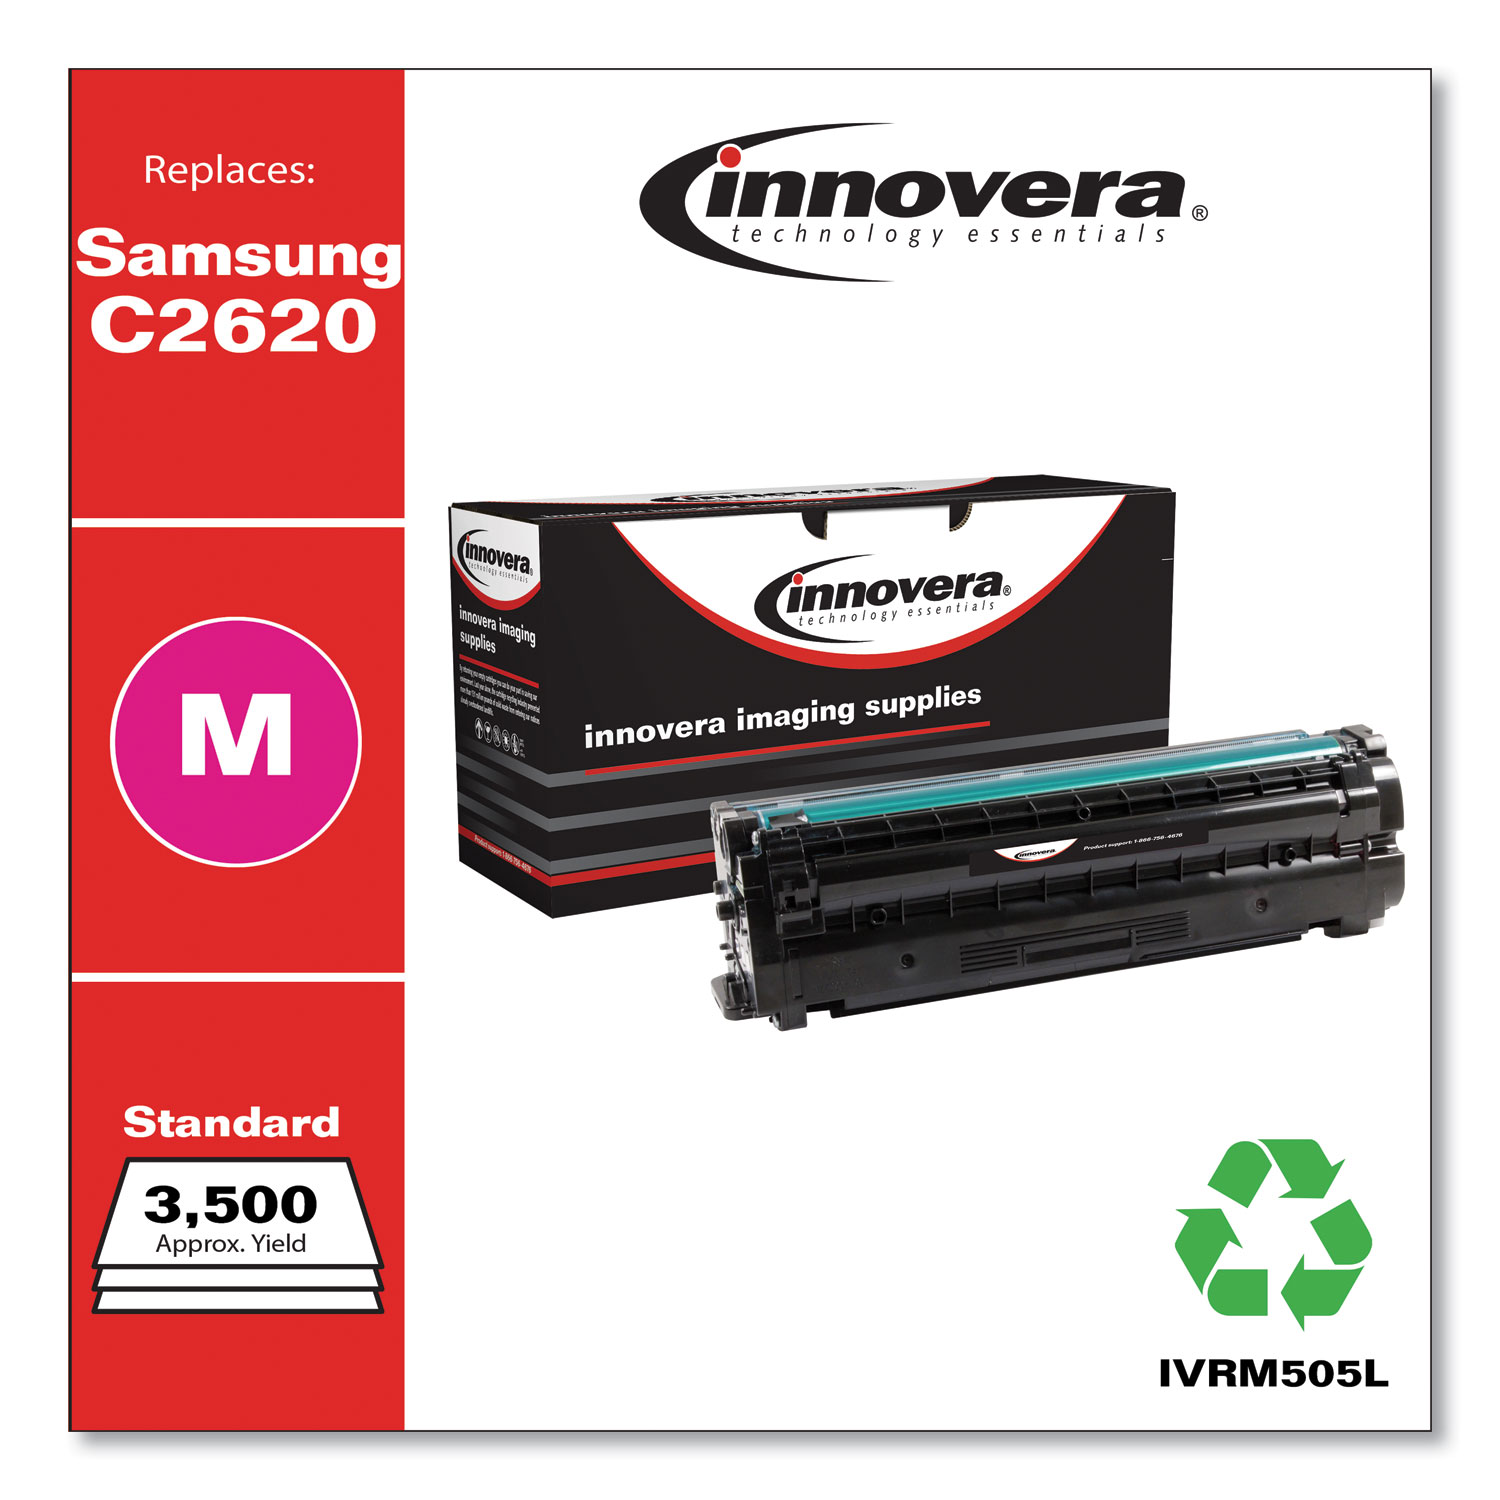 Remanufactured Magenta High-Yield Toner, Replacement for Samsung CLT-M505L (SU304A), 3,500 Page-Yield IVRM505L